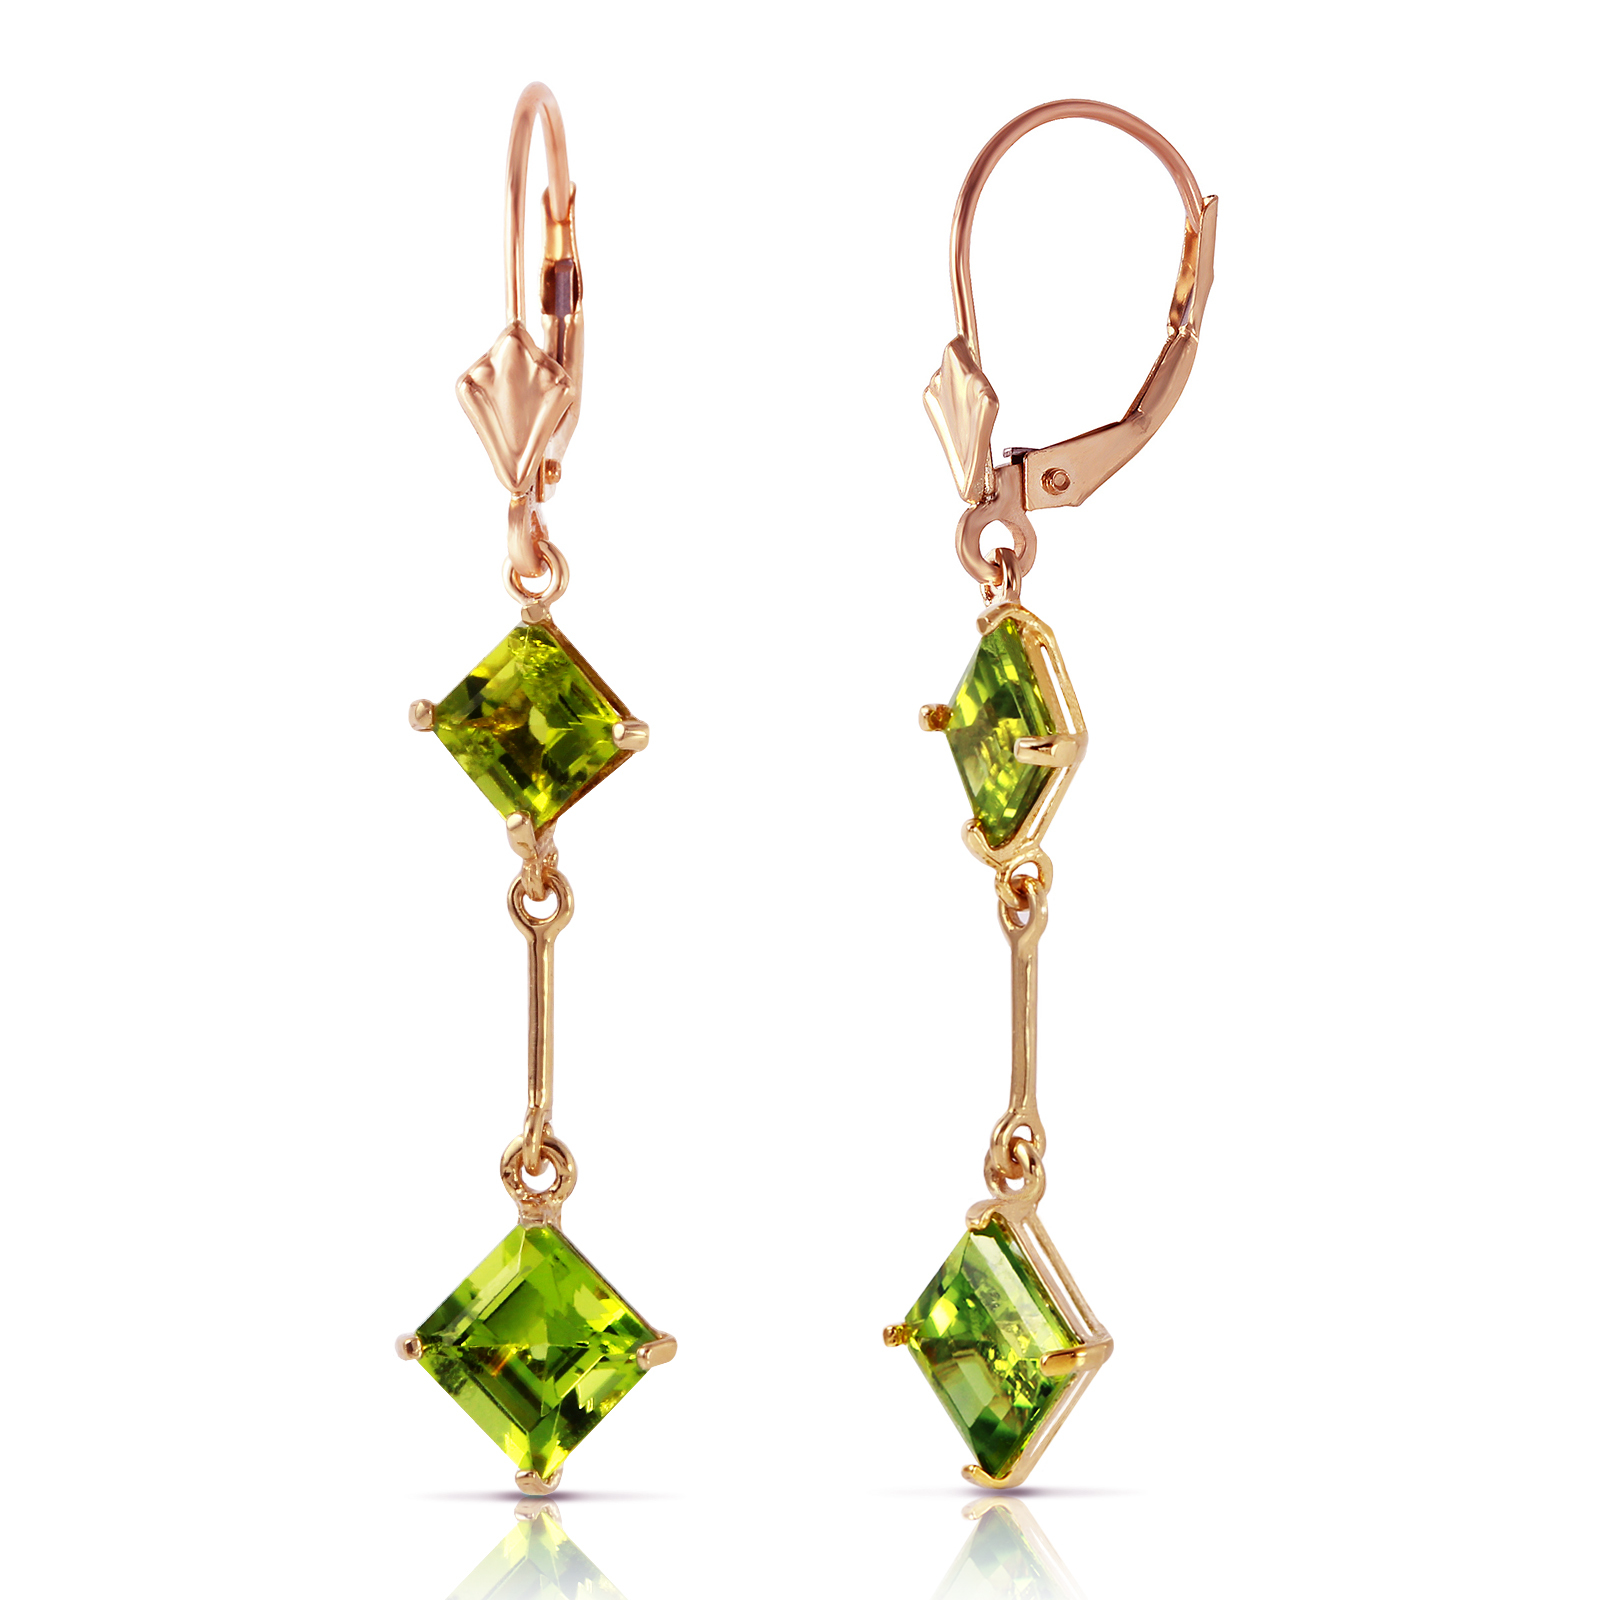 Primary image for 14K Solid Rose Gold Leverback Earrings with Peridots Bridal Gemstone Jewelry